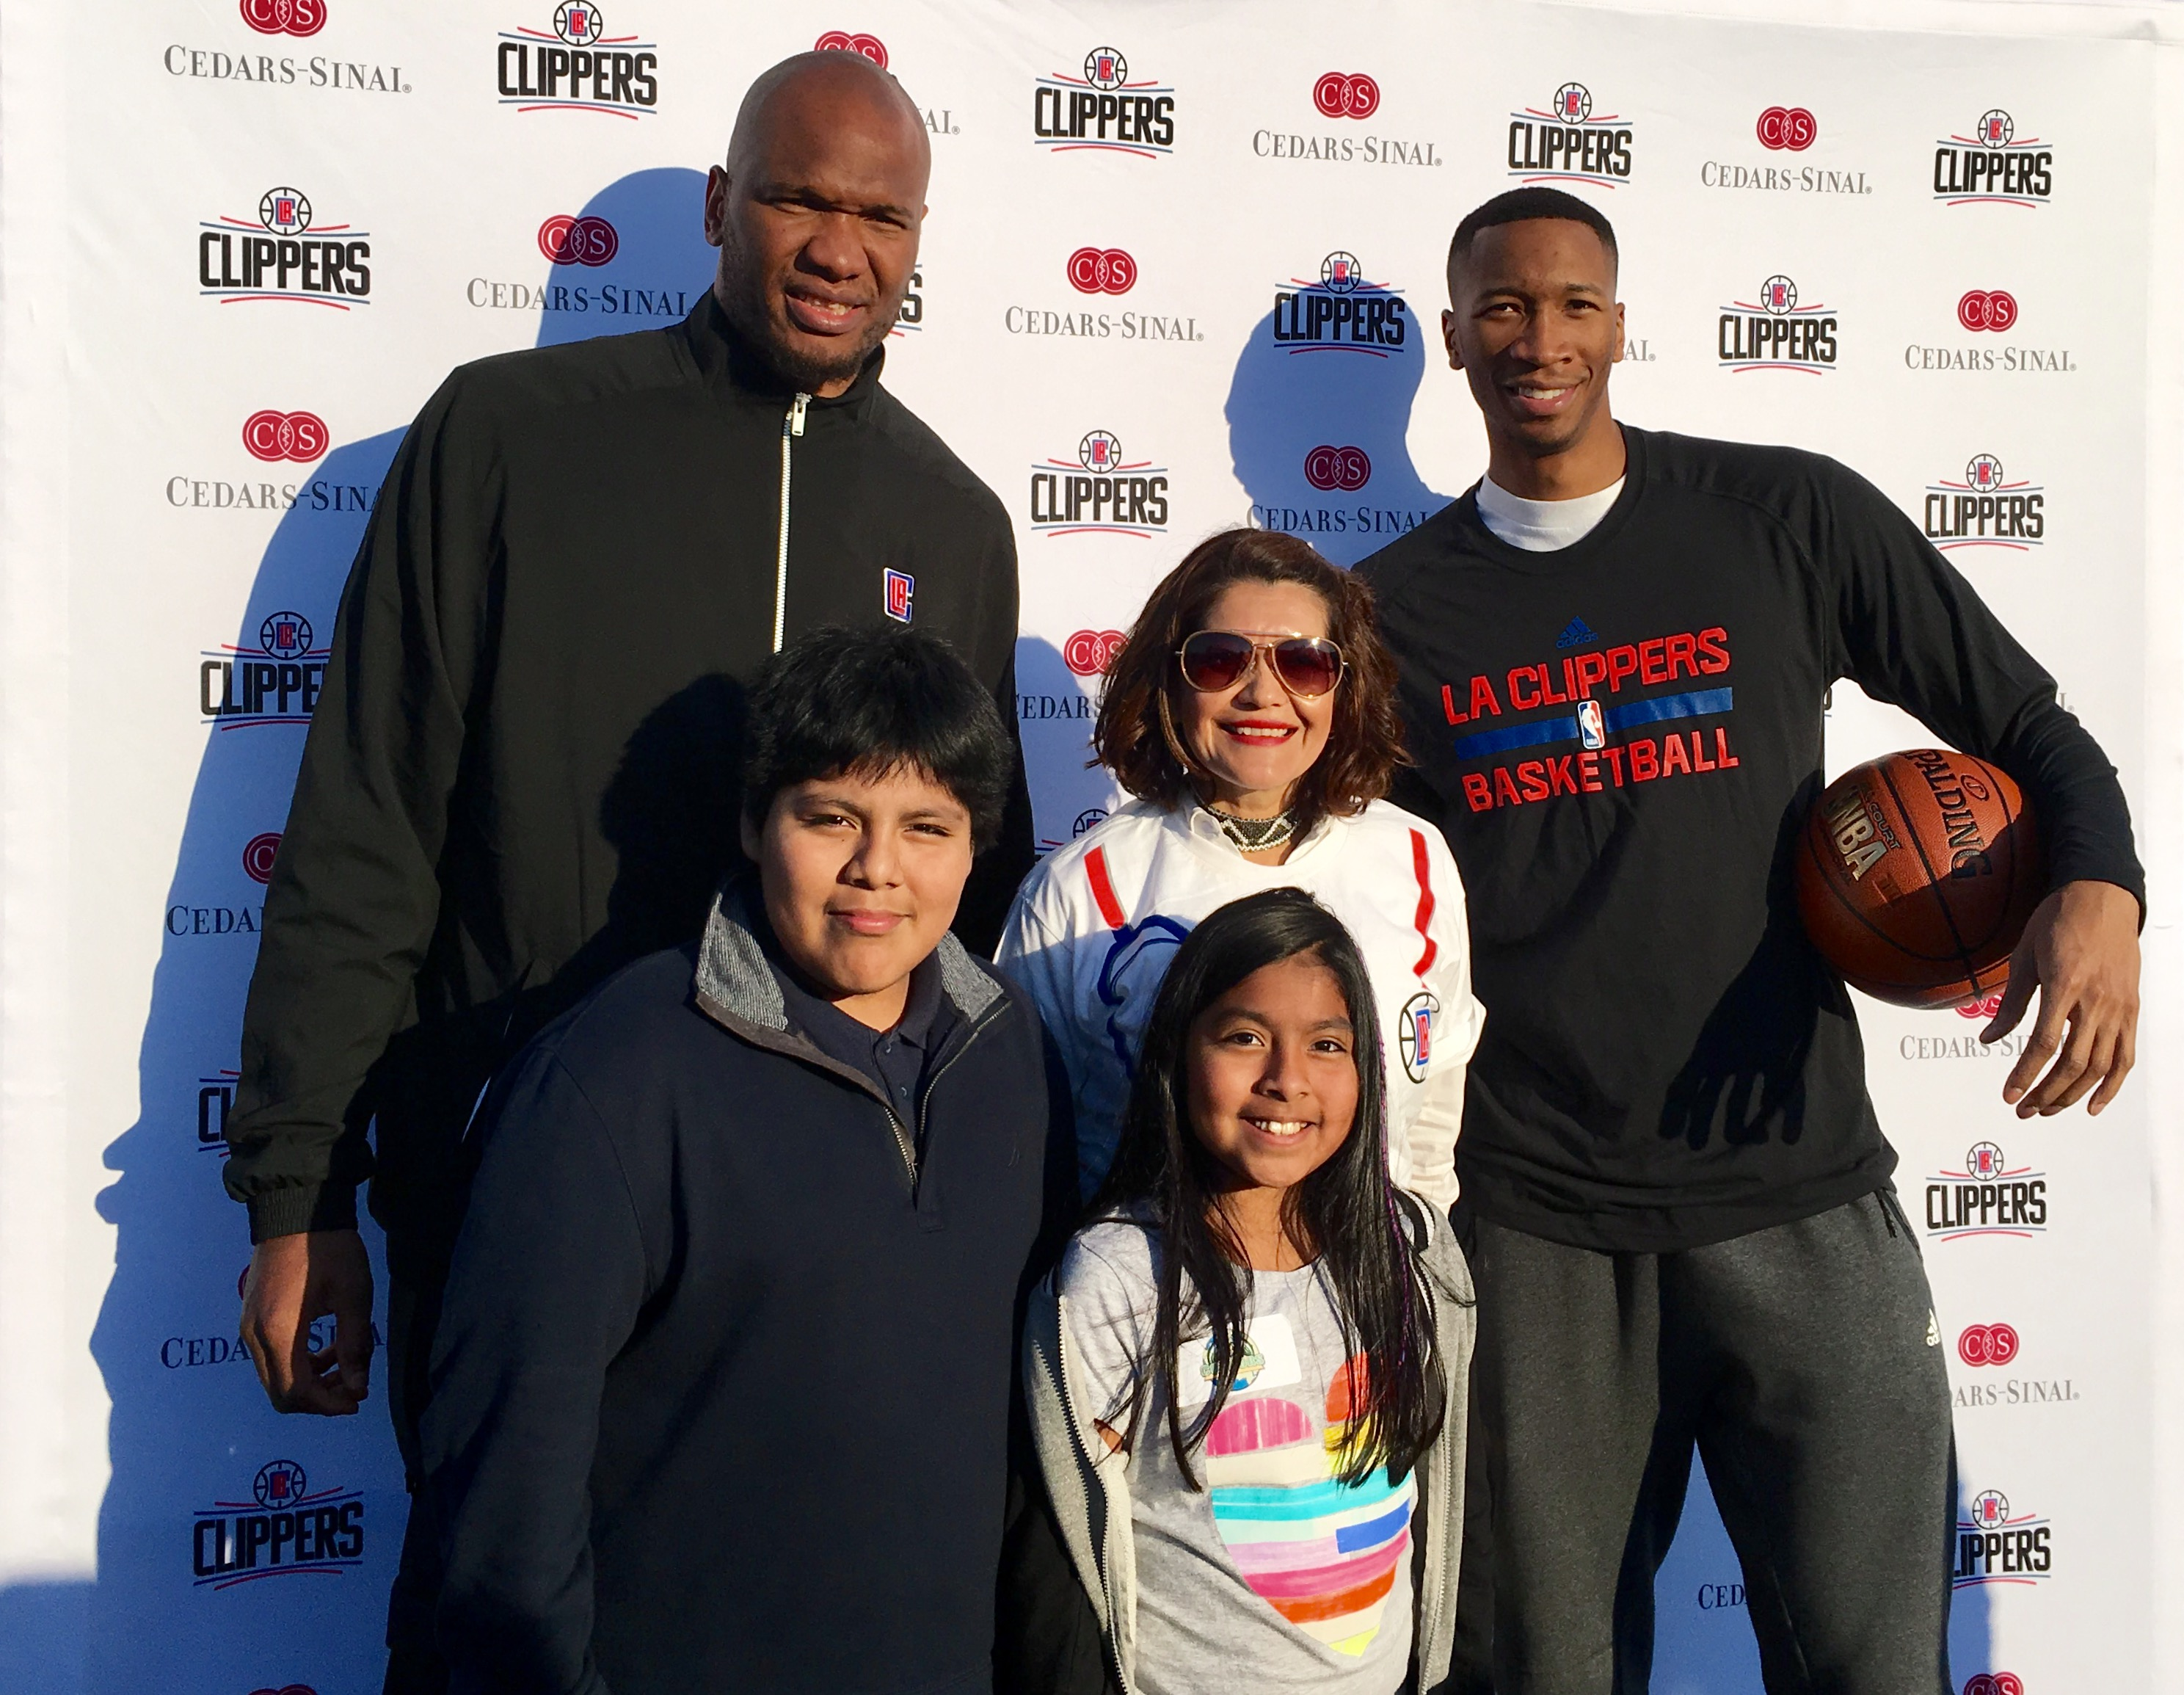 Cedars-Sinai Partners with L A  Clippers to Instill Healthy